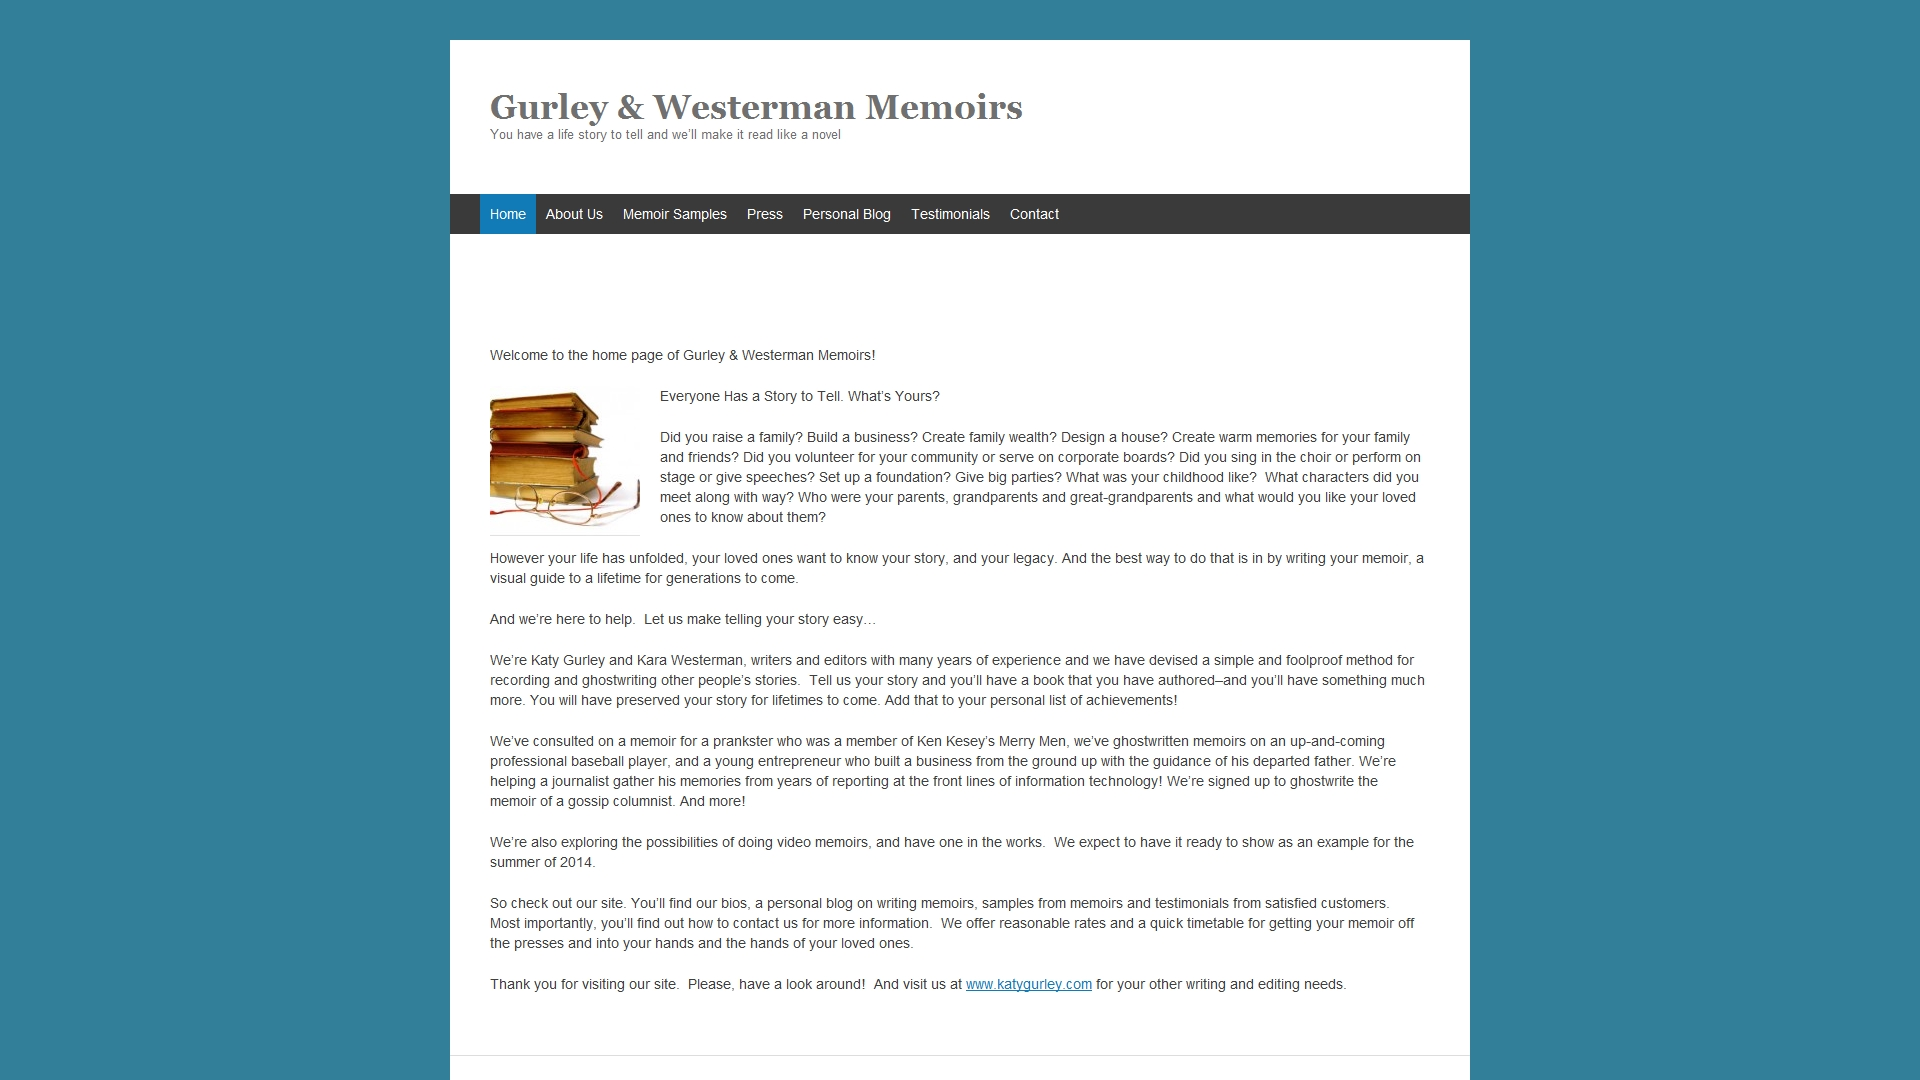 gurley and westerman memoirs